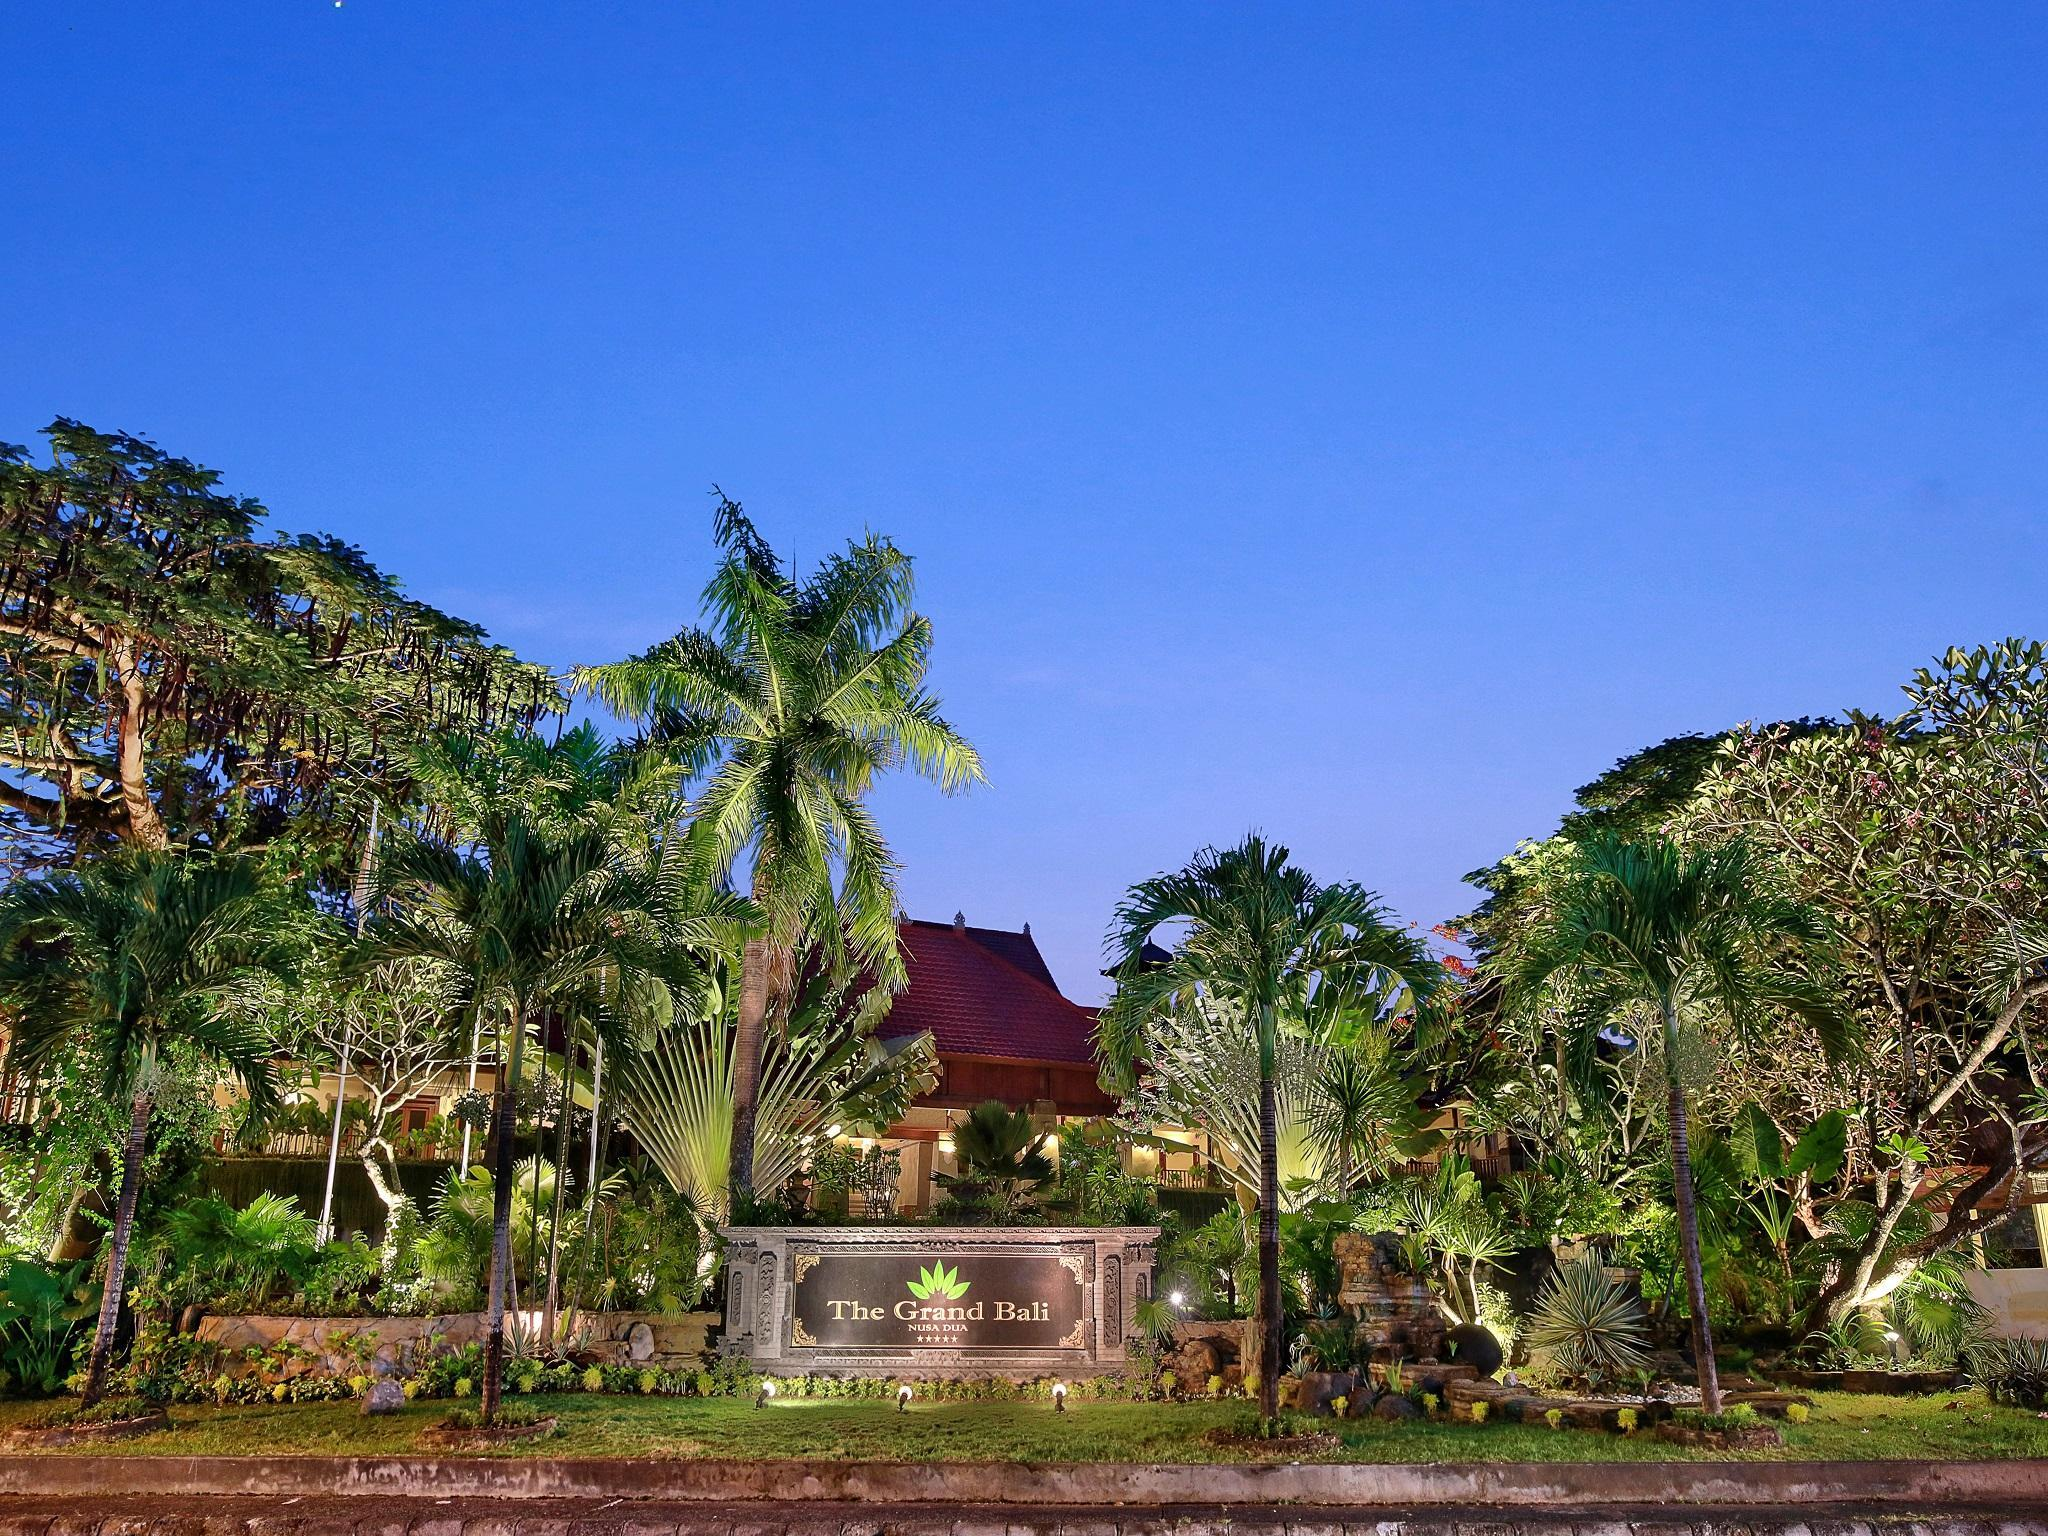 The Grand Bali Nusa Dua Resort